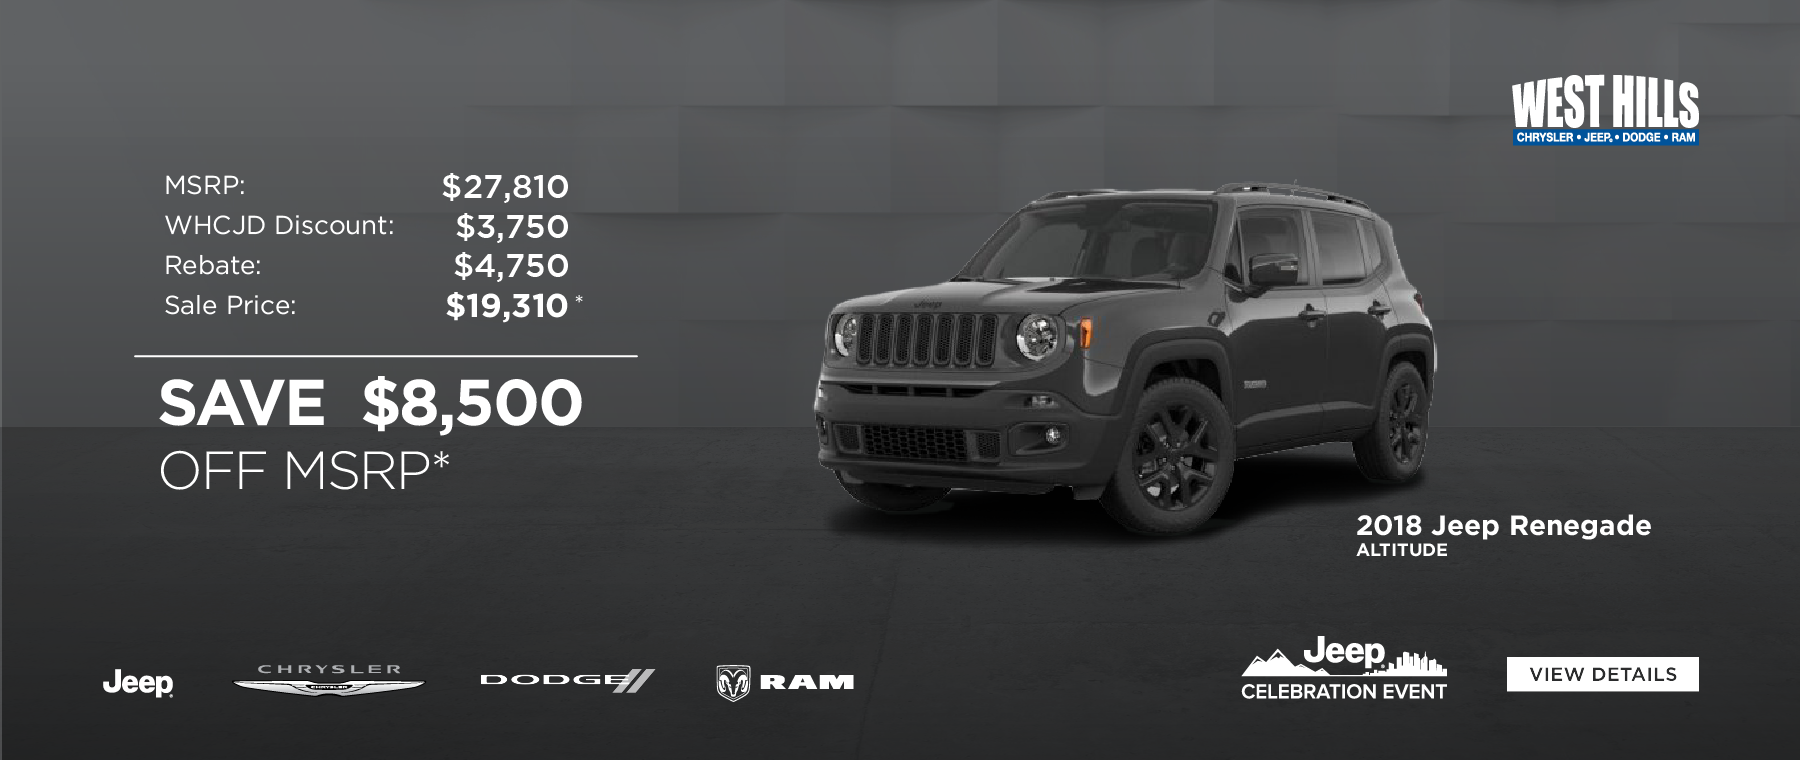 2018 Jeep Renegade Altitude MSRP: $27,810 WHCJDR Discount: $3,750 Rebate: $4,750 Sale Price: $19,310* SAVE $8,500 OFF MSRP*    * Offer valid on 2018 Jeep Renegade Altitude. VIN: ZACCJBBBXJPH77642. MSRP: $27,810. WHCJDR Discount: $3,750. Rebate: $4,750. Sale Price: $19,310. Based on approval of program ID 70CJ1, 44CJB3, WECJA1, 41CK51. Subject to credit approval. Down payment and monthly payment may vary. Excludes taxes, tags, registration and title, insurance and dealer charges. A negotiable dealer documentary service fee of up to $150 may be added to the sale price or capitalized cost. Exp. 5/31/2019.